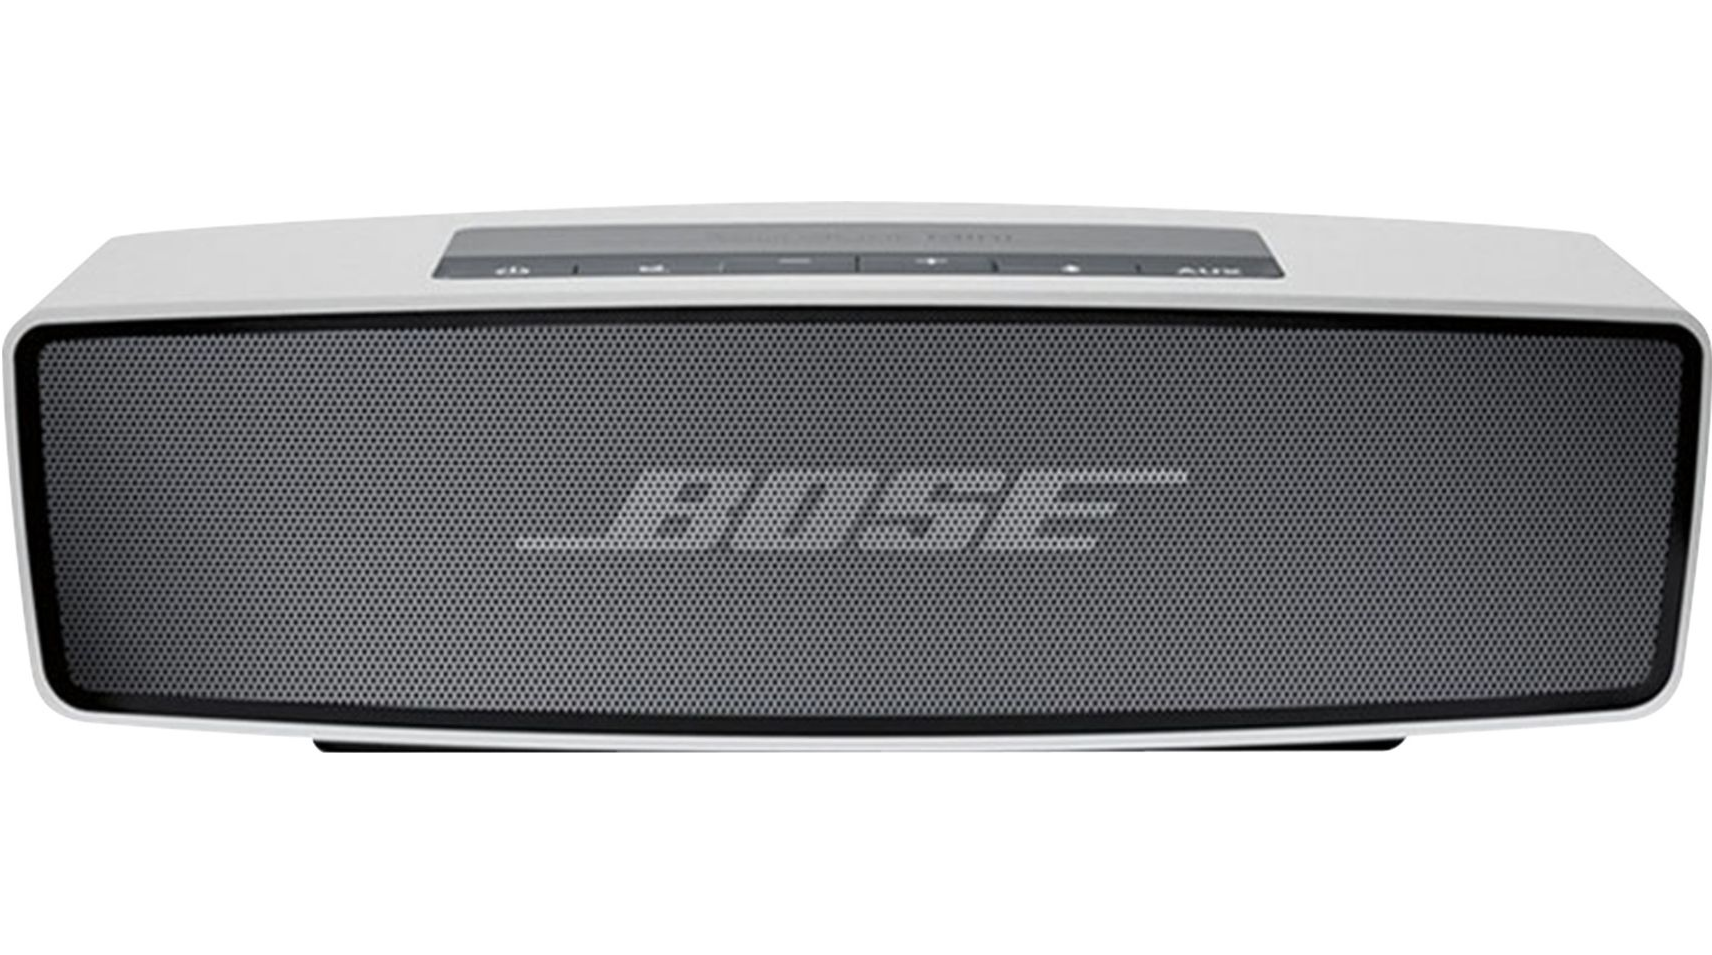 bose soundlink mini test complet enceintes portables les num riques. Black Bedroom Furniture Sets. Home Design Ideas